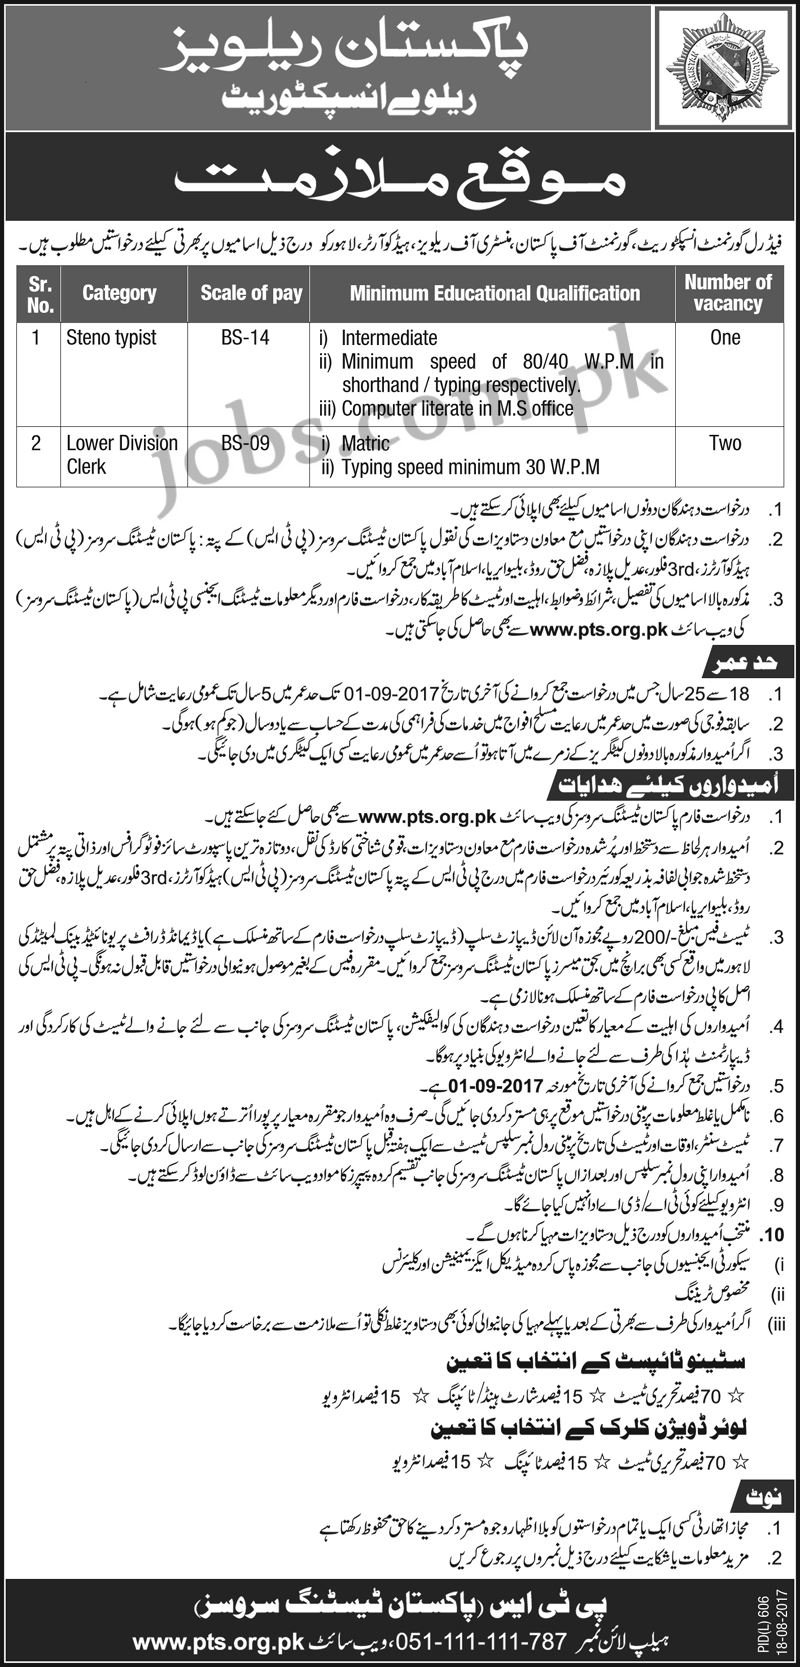 Coca cola job application form images standard form examples pakistan railways jobs 2017 for stenotypist clerks posts at download pts application form and deposit slip falaconquin